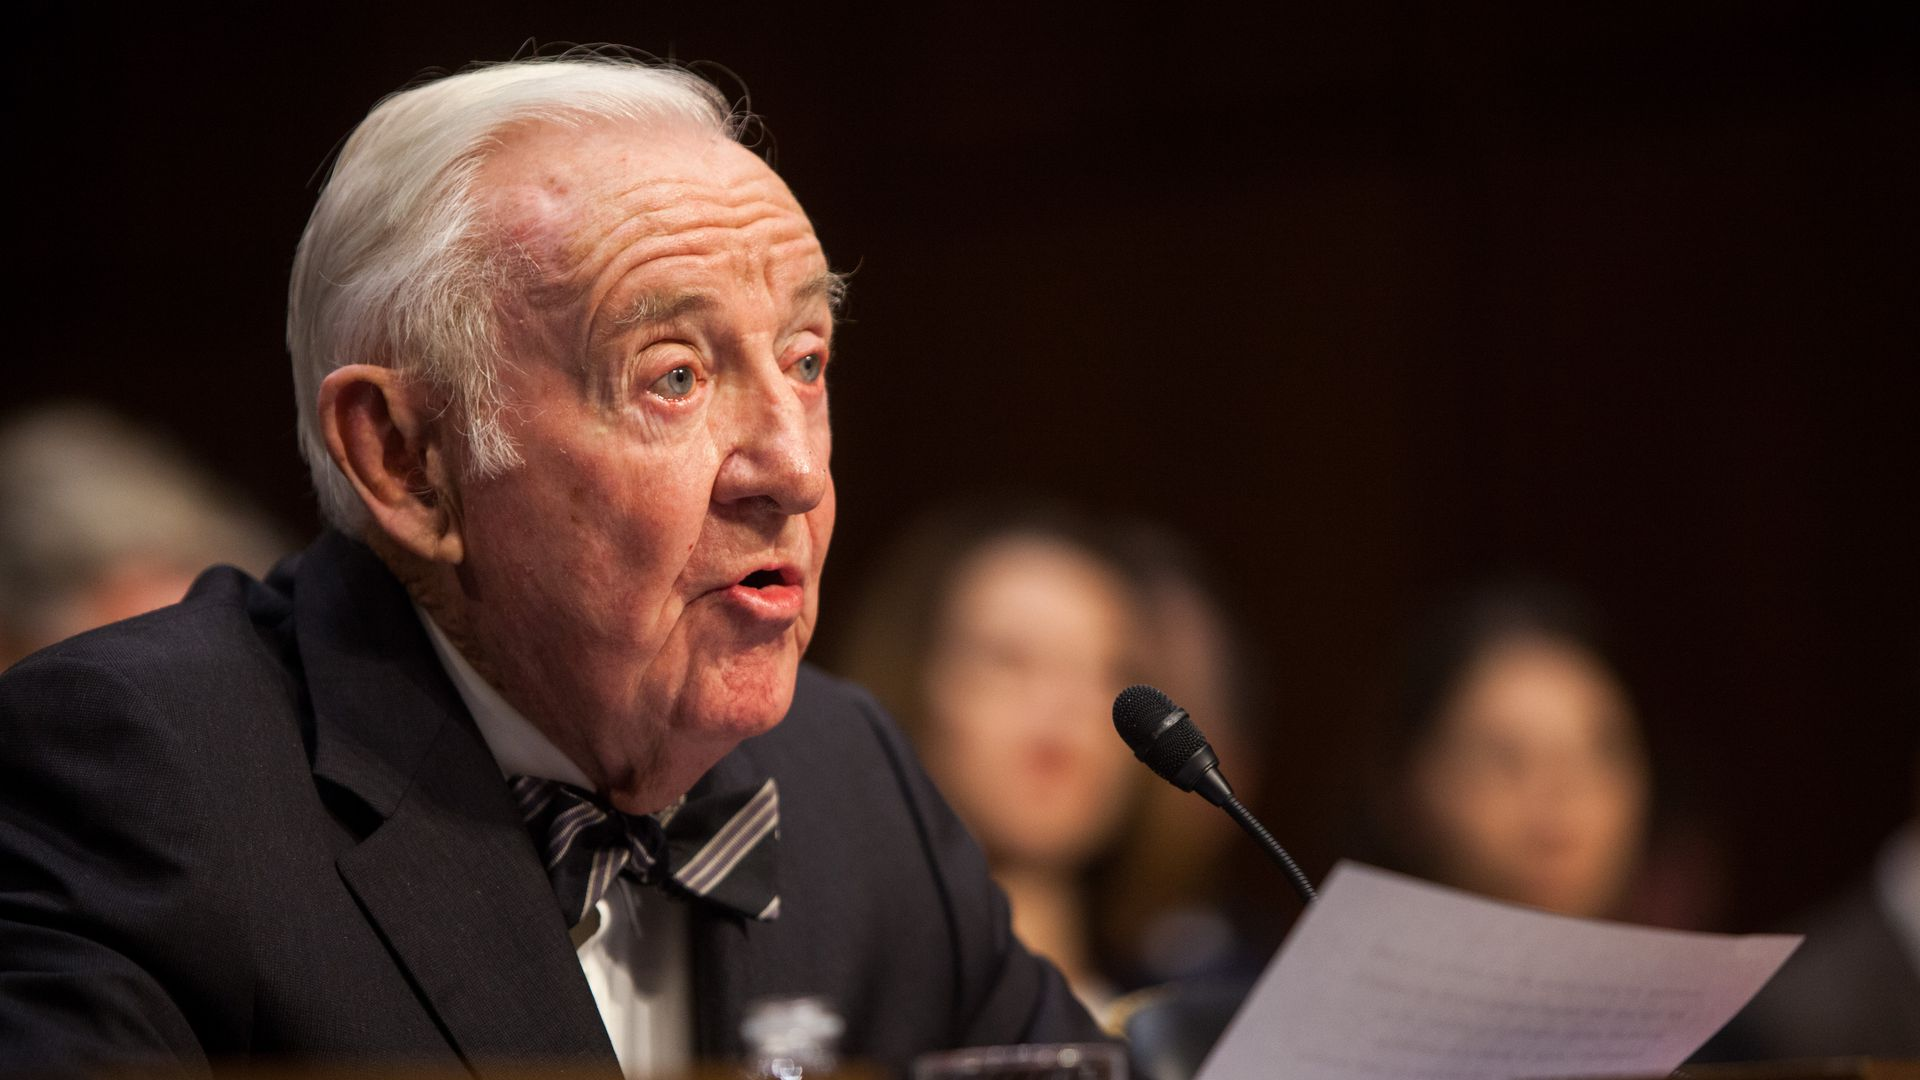 Former Supreme Court Justice John Paul Stevens. Photo: Allison Shelley/Getty Images